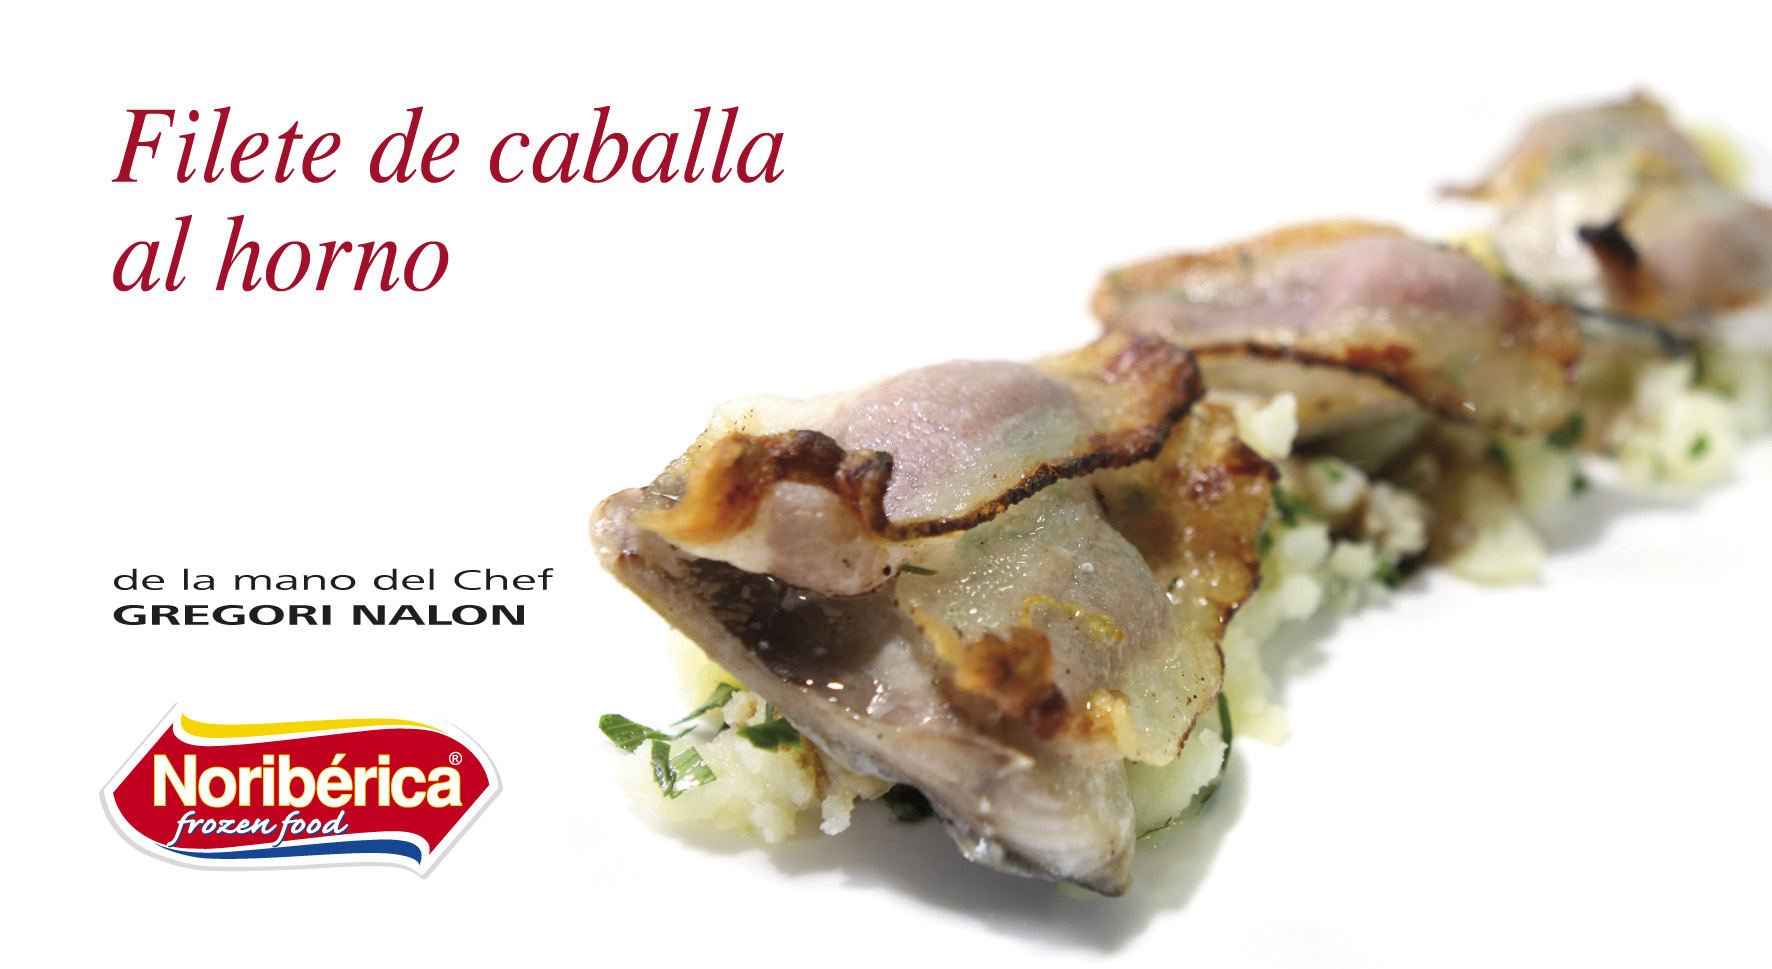 filete de caballa al horno